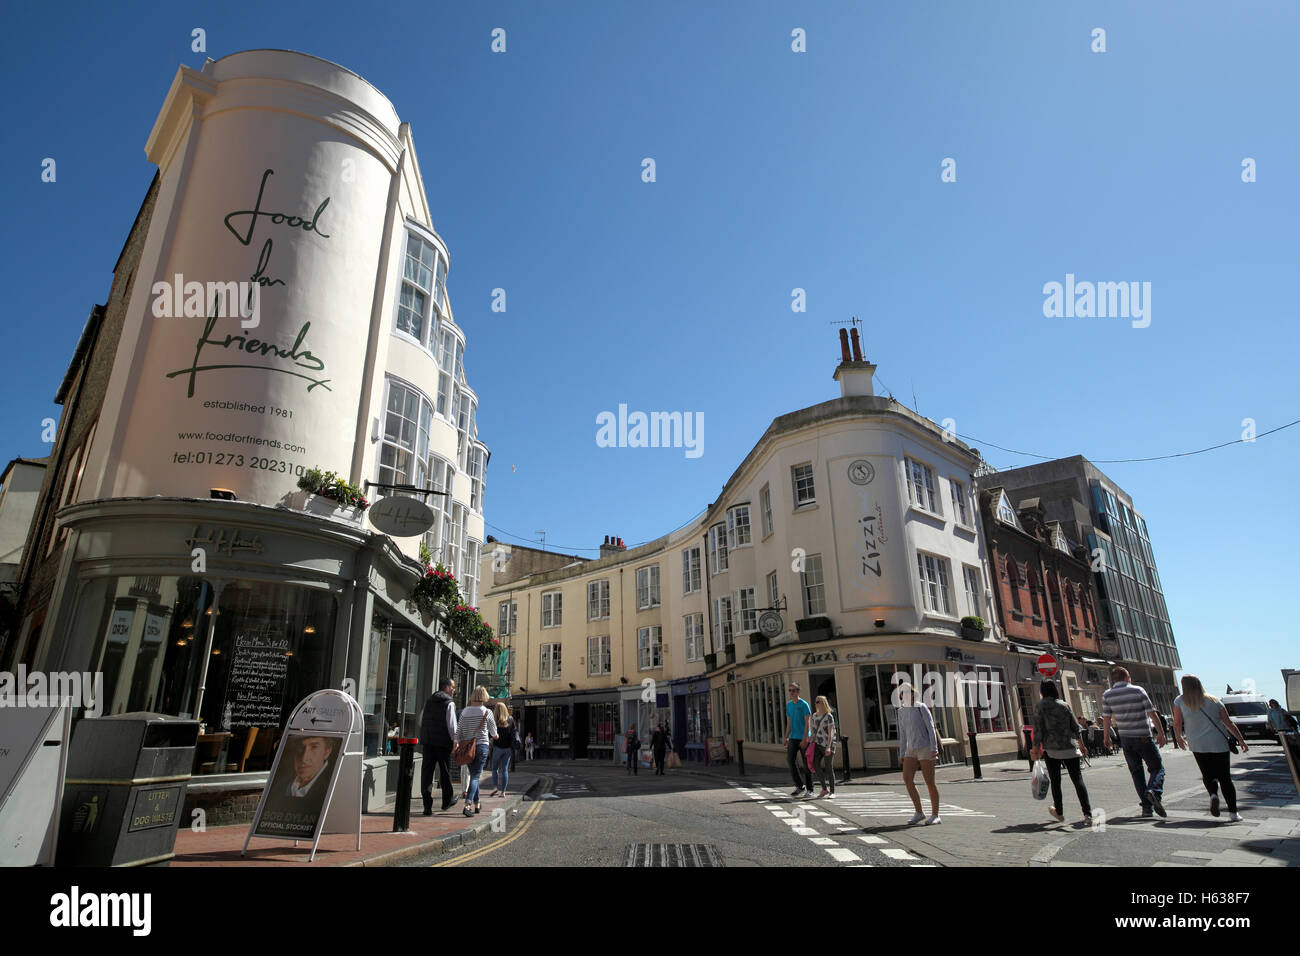 Prince Albert Street (winding off to the left), Brighton town centre, East Sussex. - Stock Image